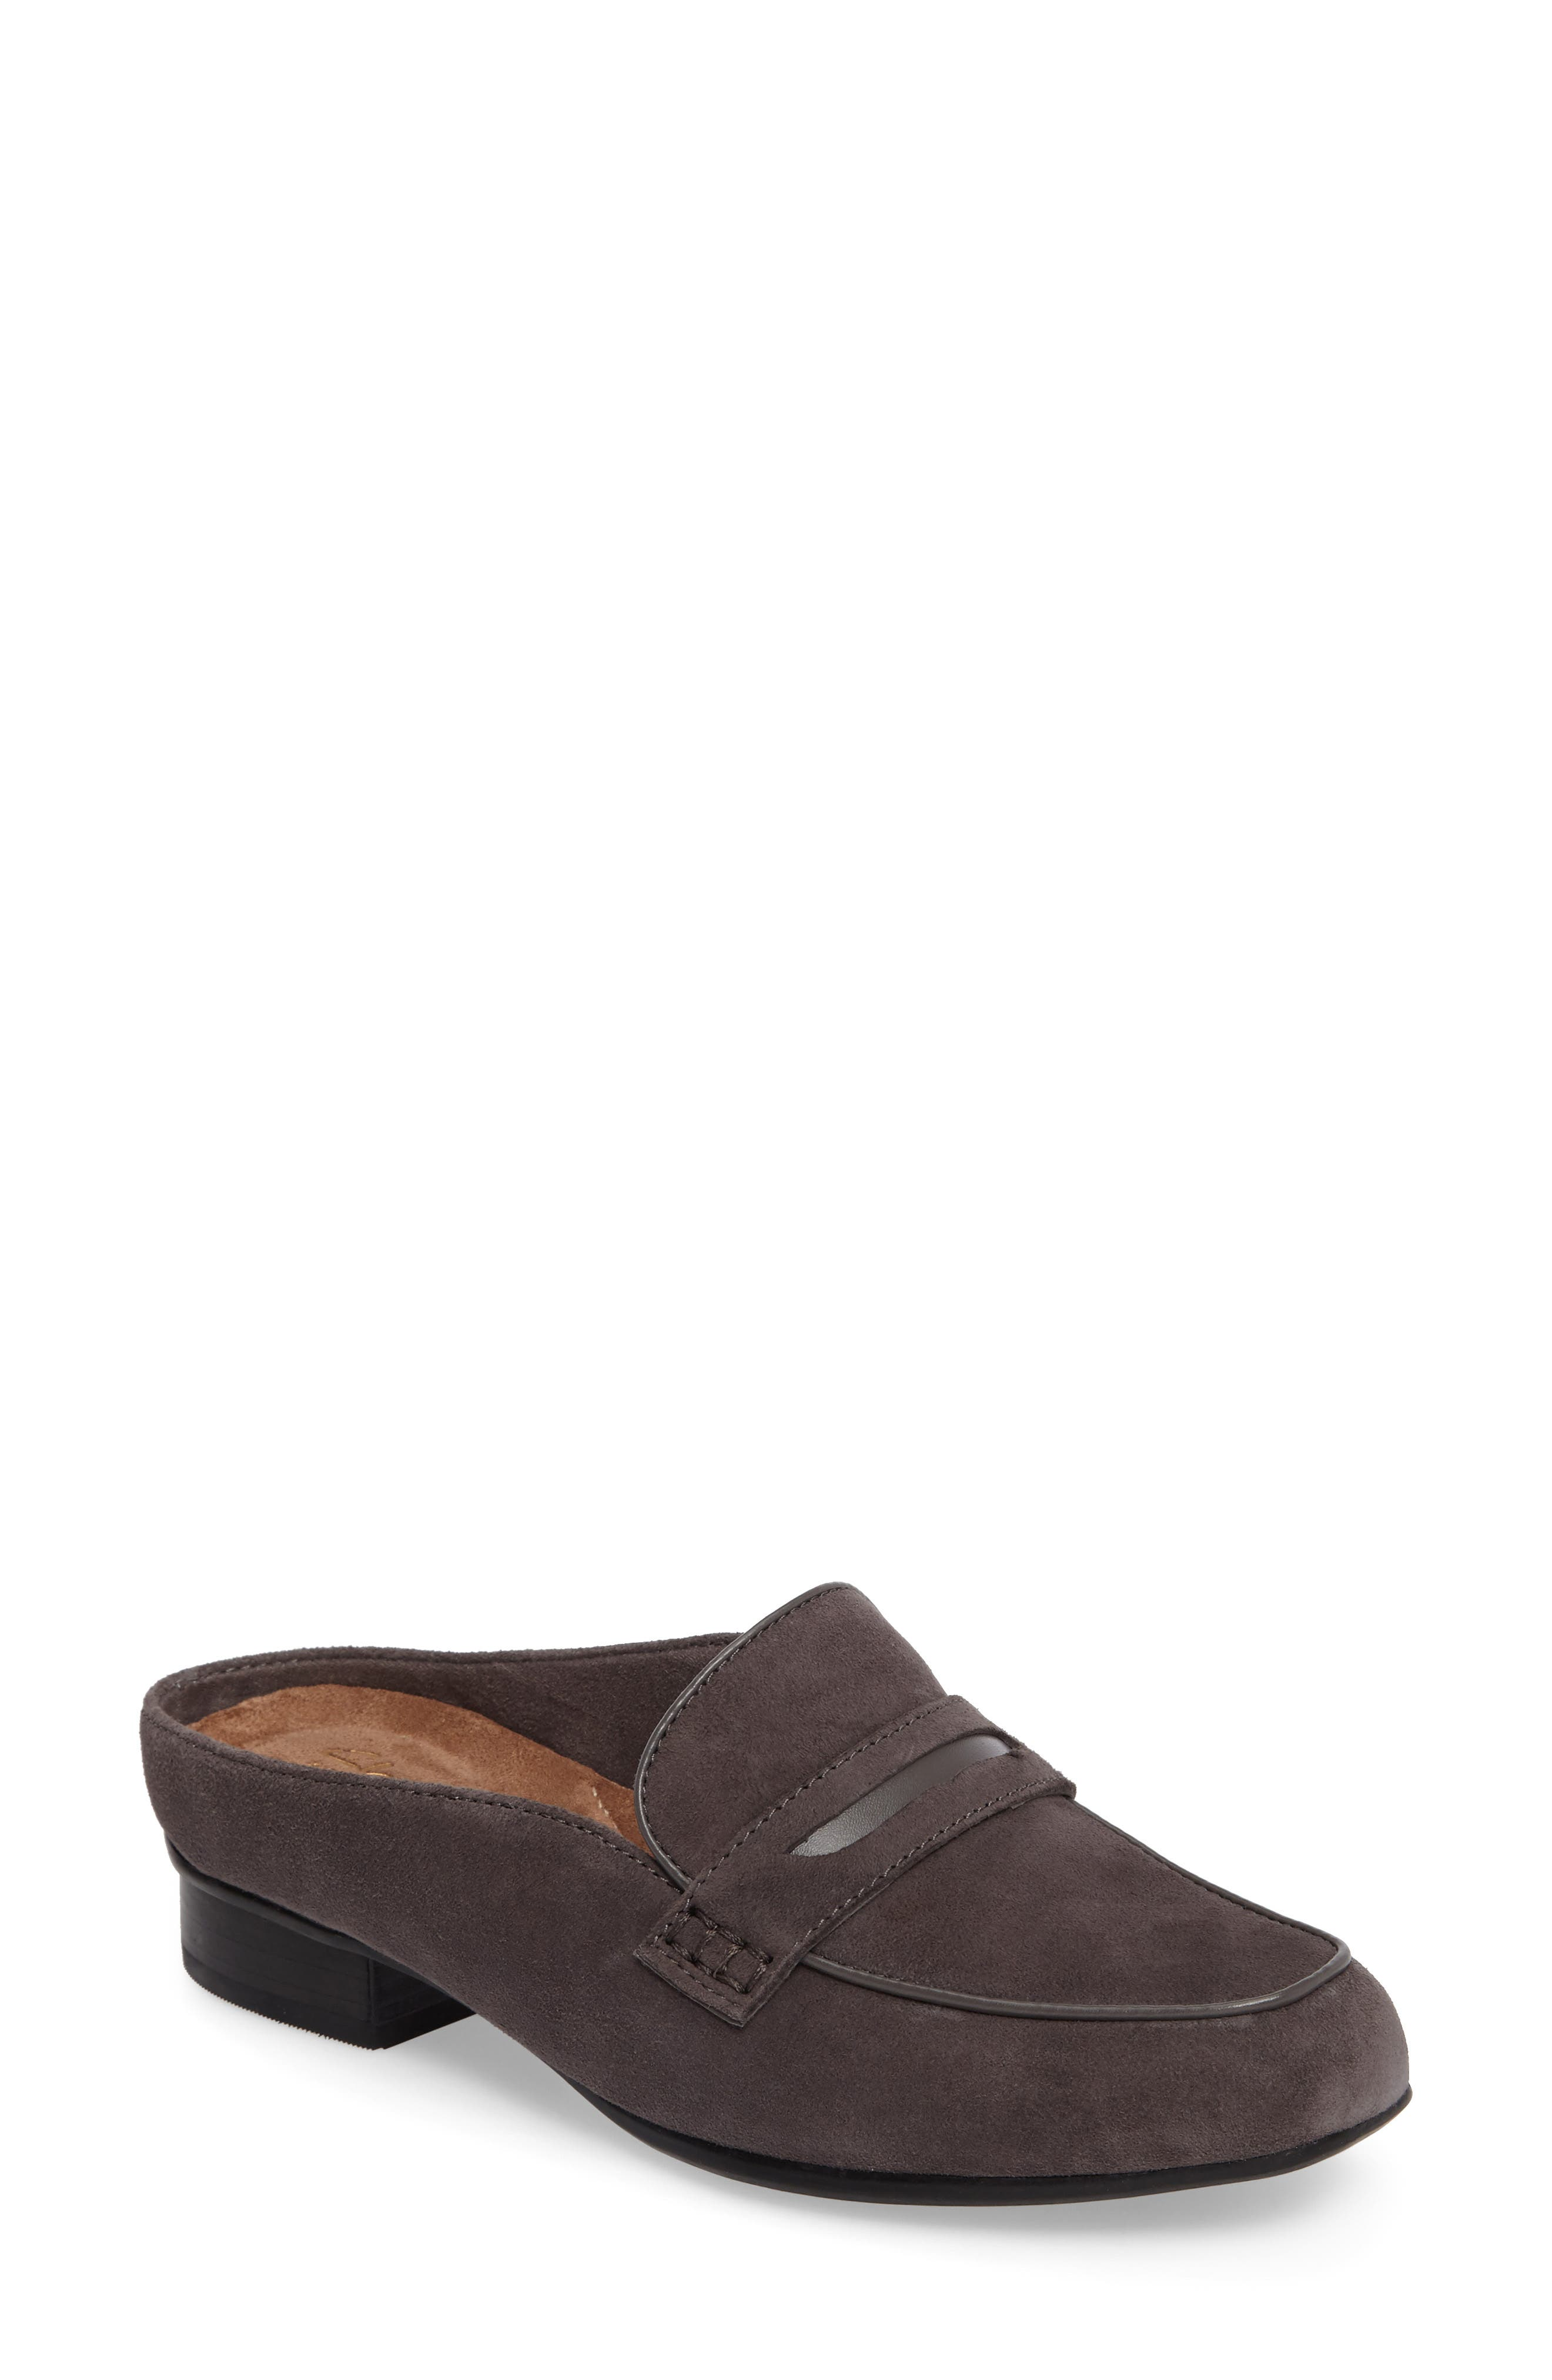 Keesha Donna Loafer Mule,                             Main thumbnail 1, color,                             DARK GREY SUEDE